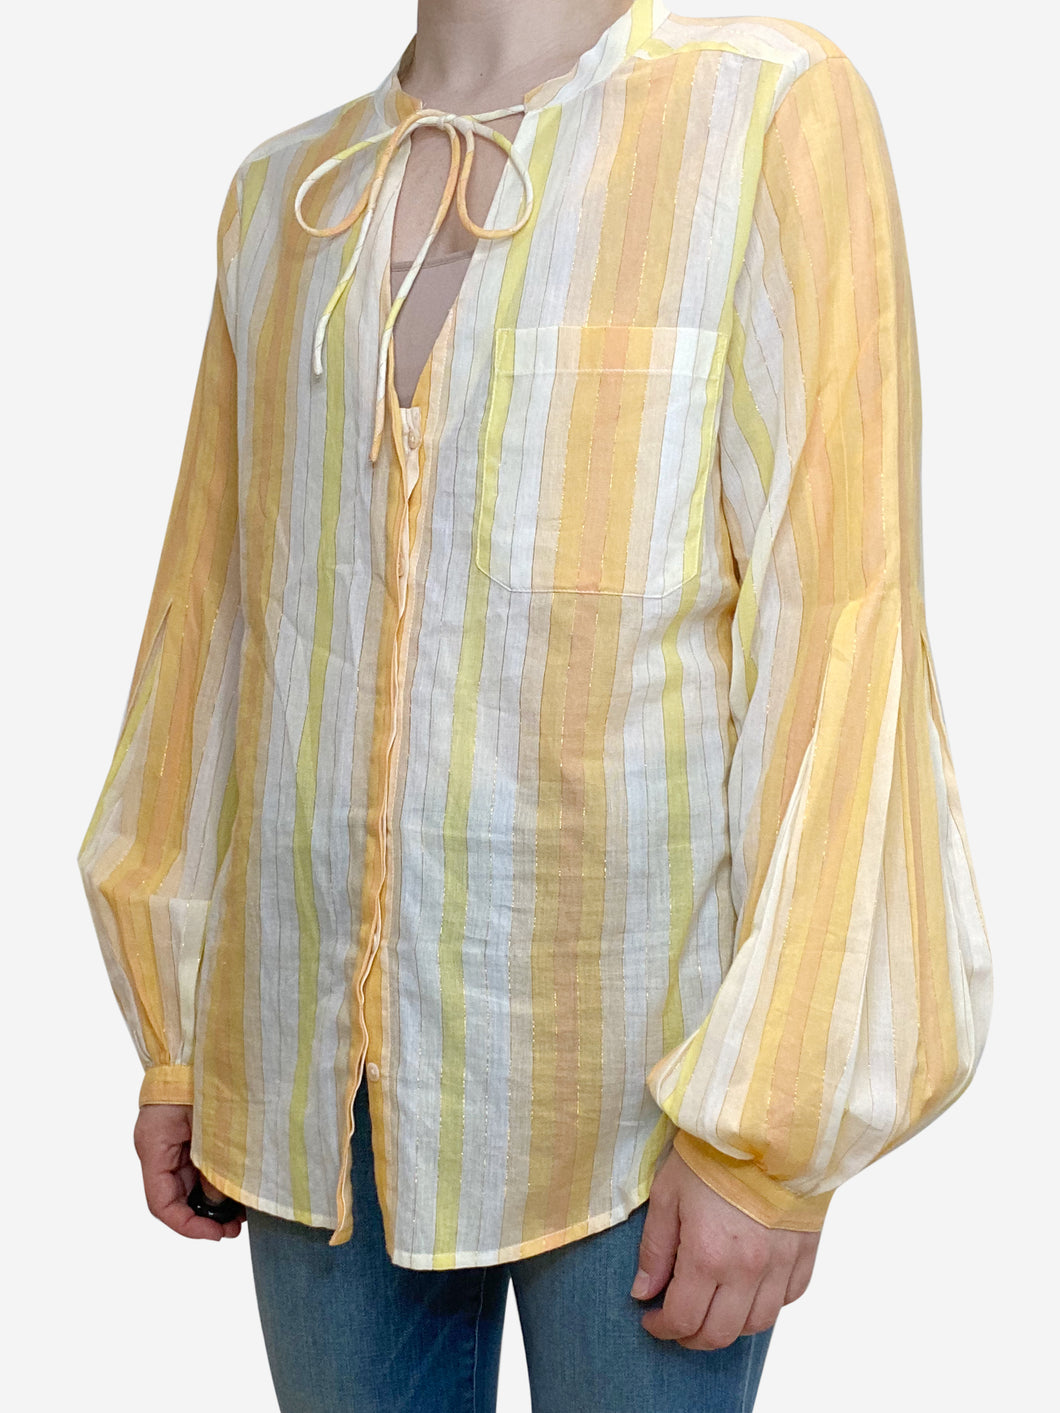 Yellow and orange striped tie neck blouse - size M